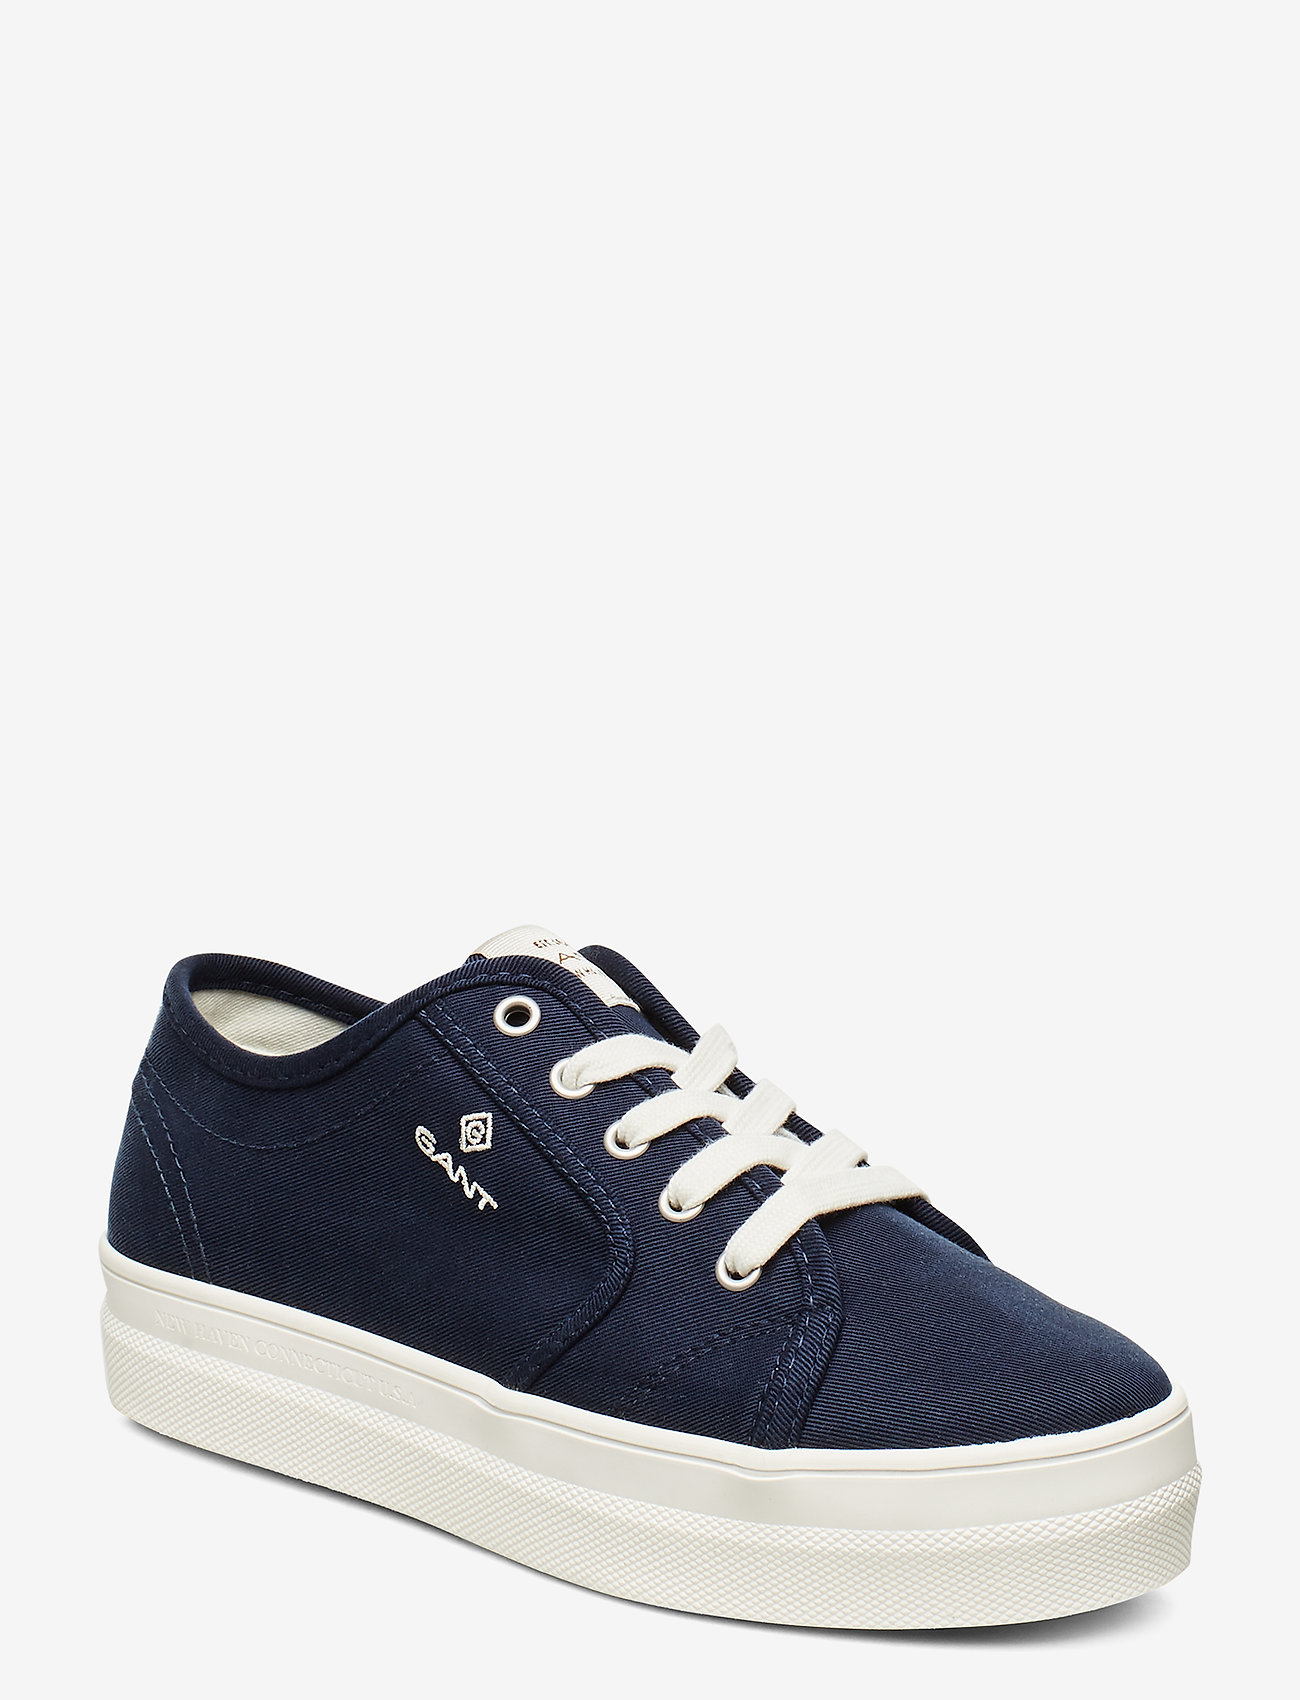 GANT - Leisha Low lace shoes - low top sneakers - marine - 0